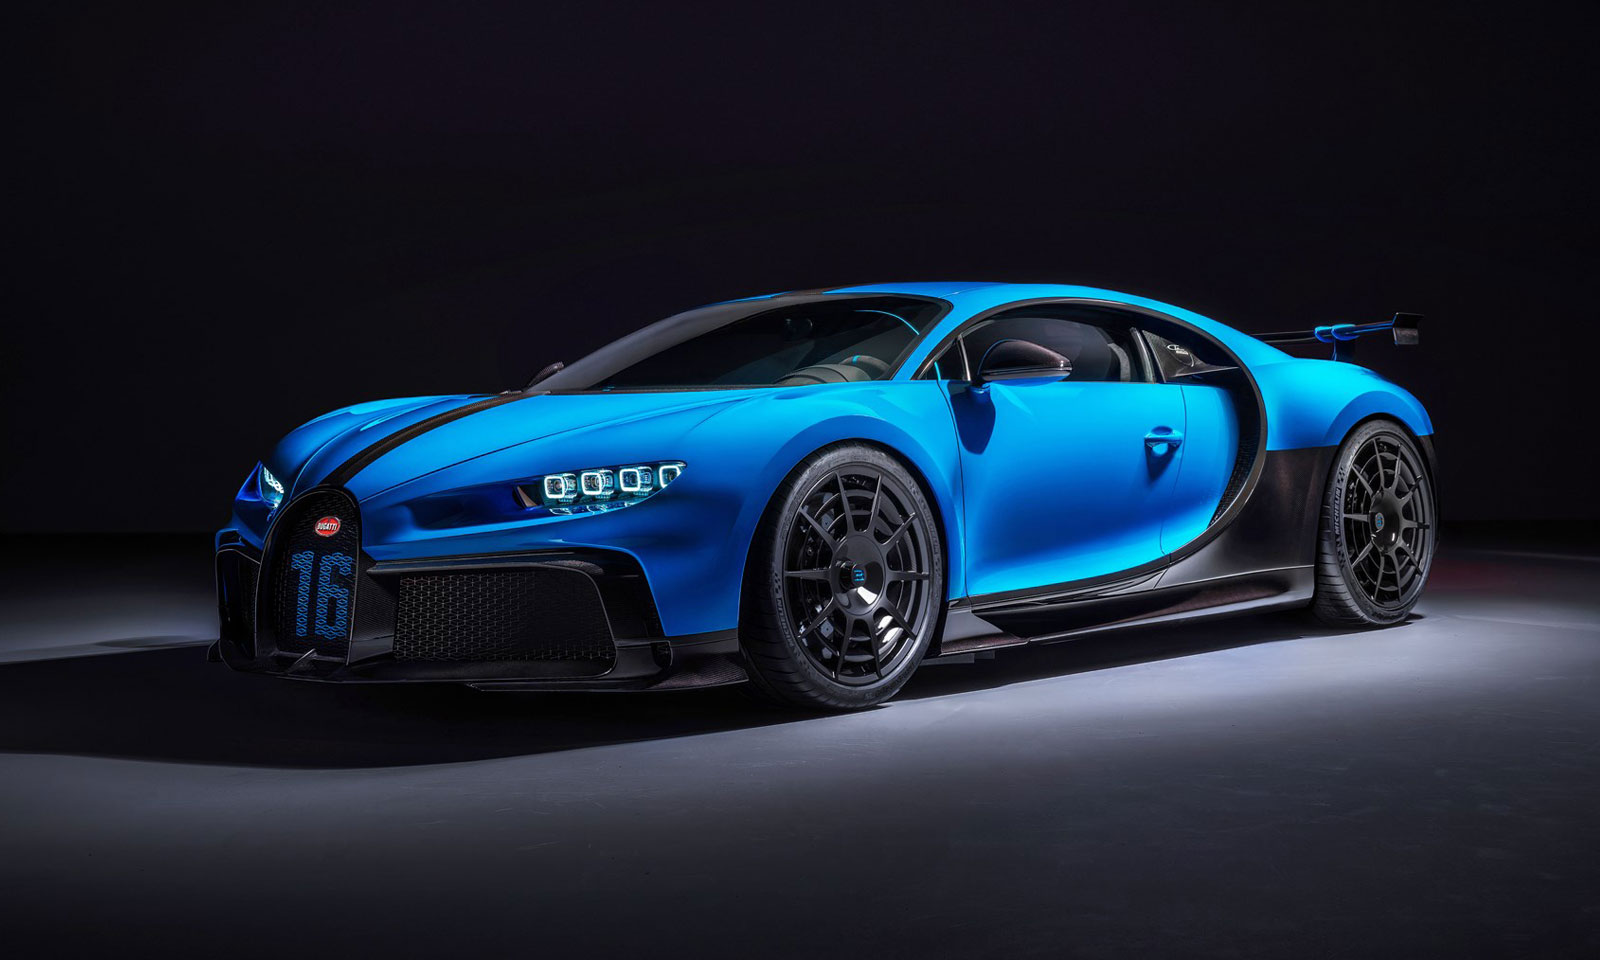 Jacob & Co. x Bugatti Chiron Tourbillon is the first all-new timepiece of this partnership